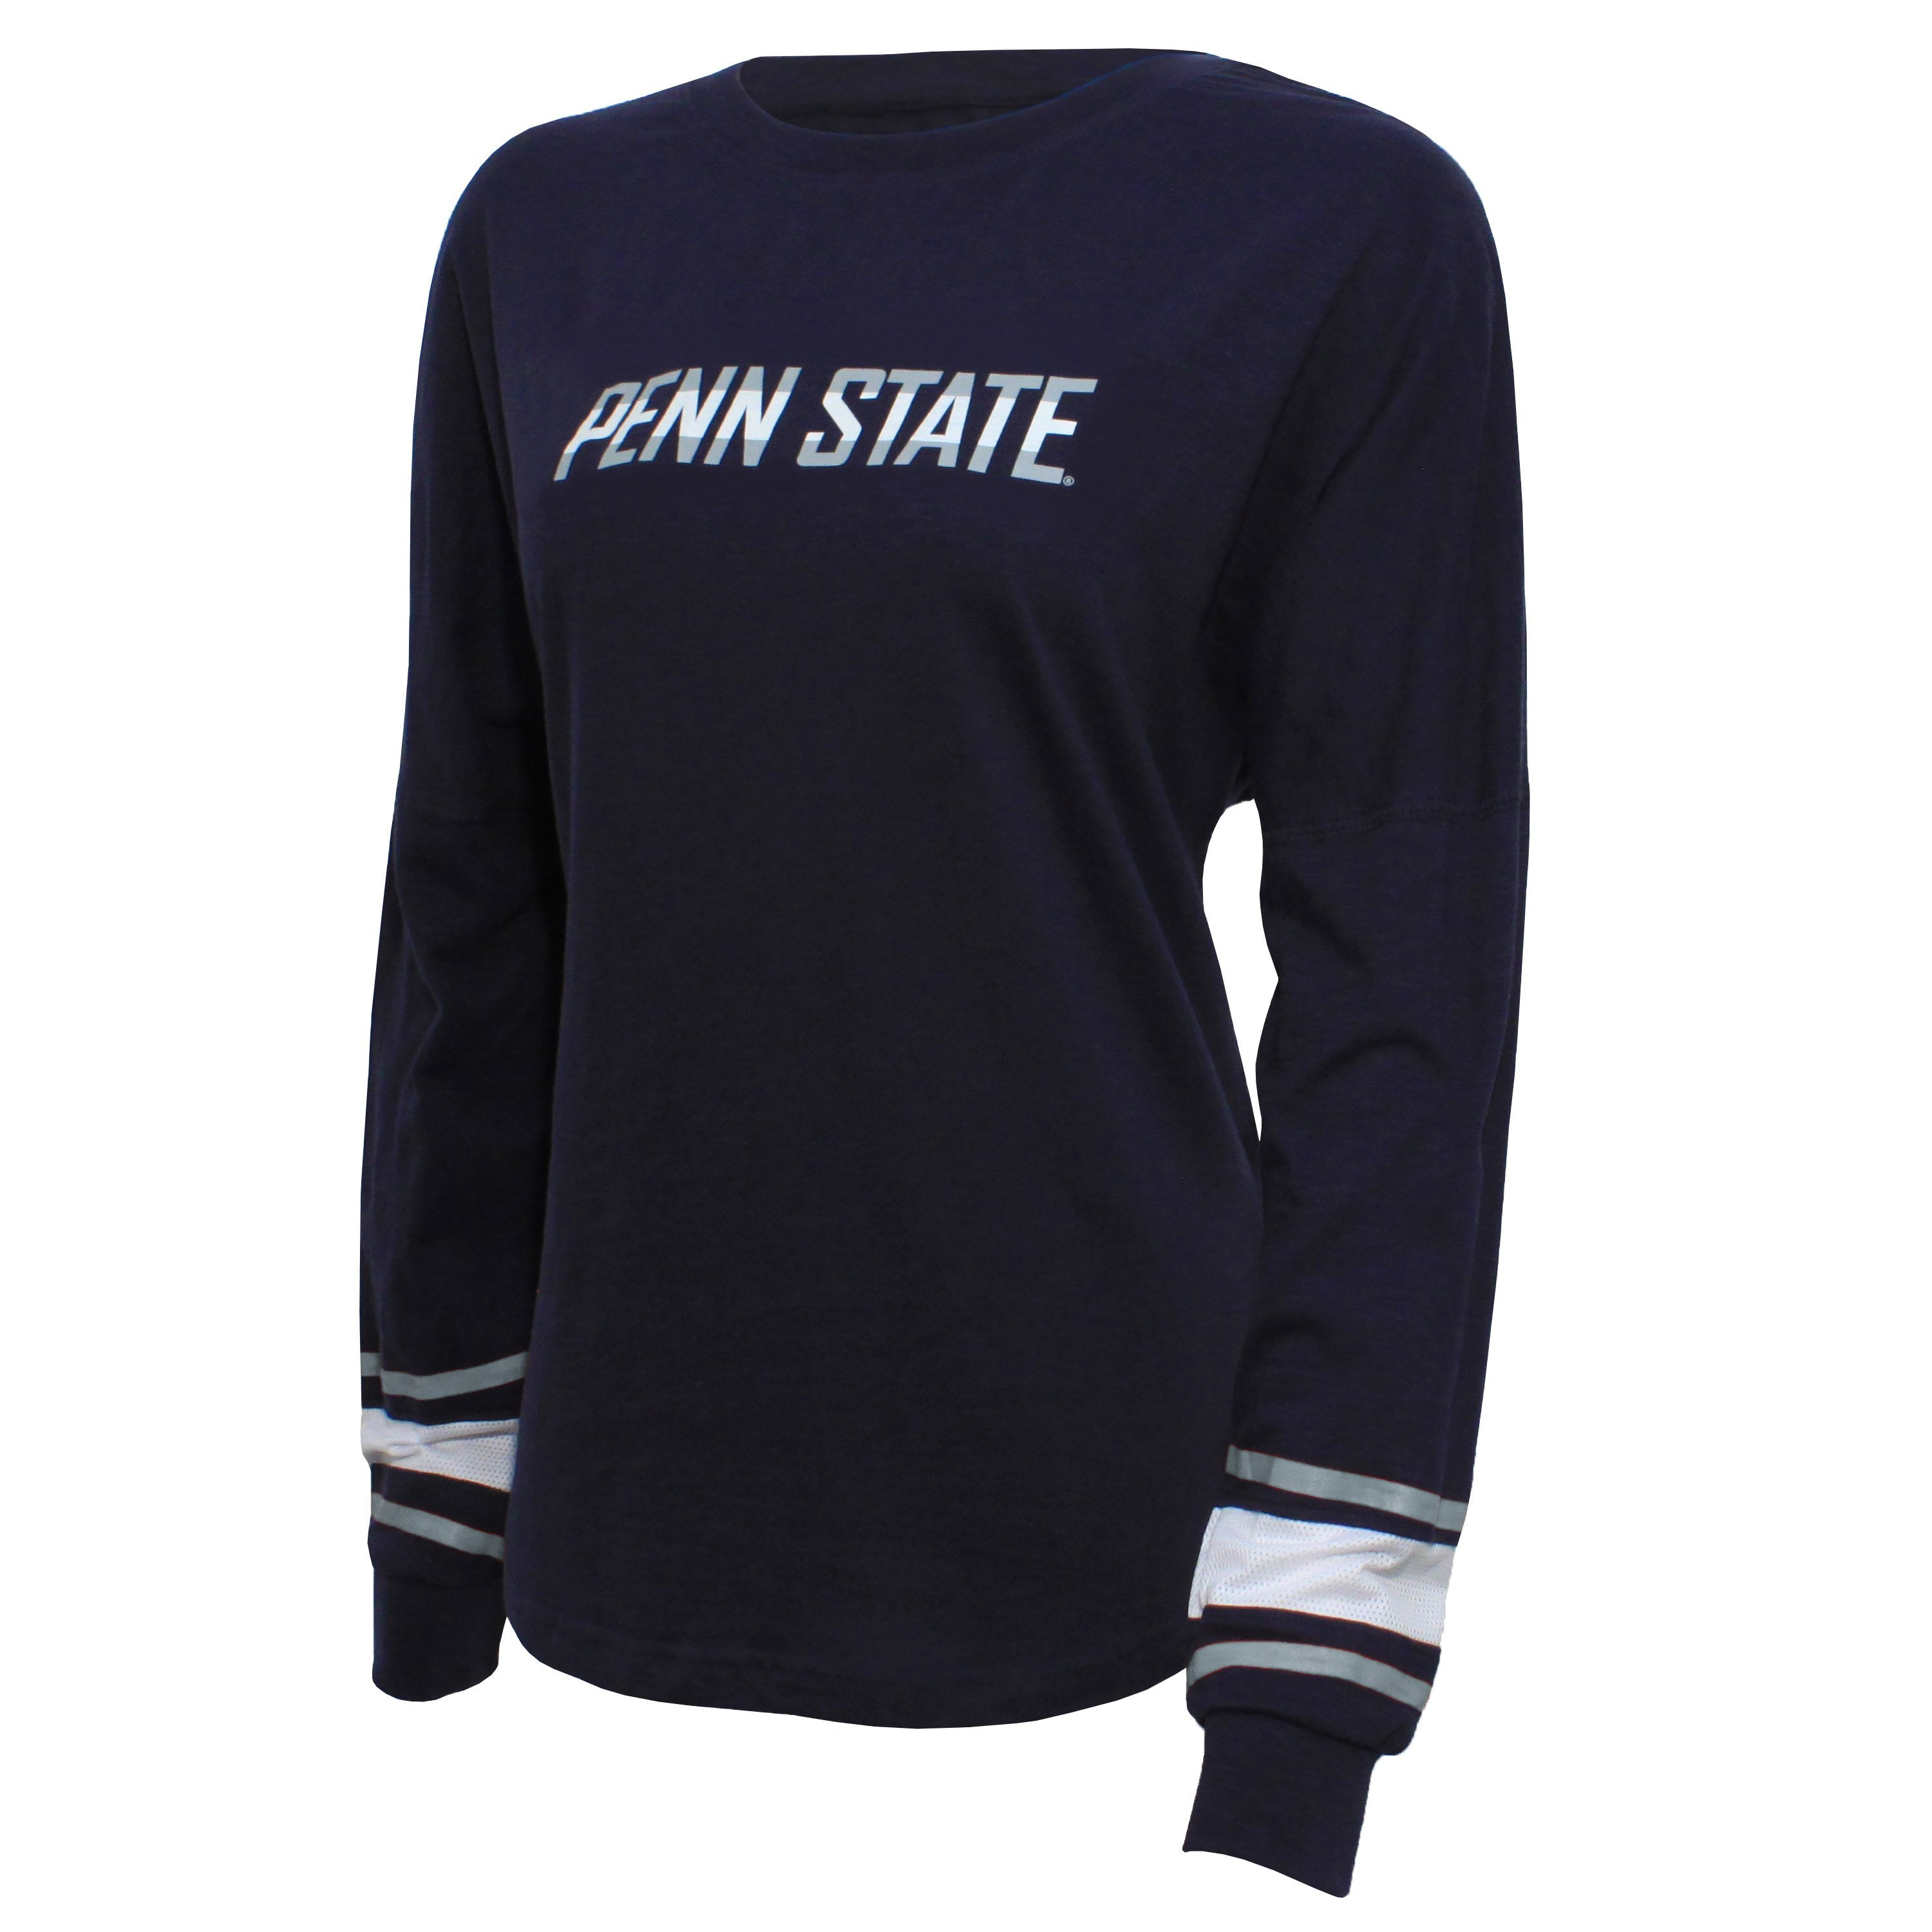 Campus Specialties Penn State Women's Navy Striped Sleeve Top